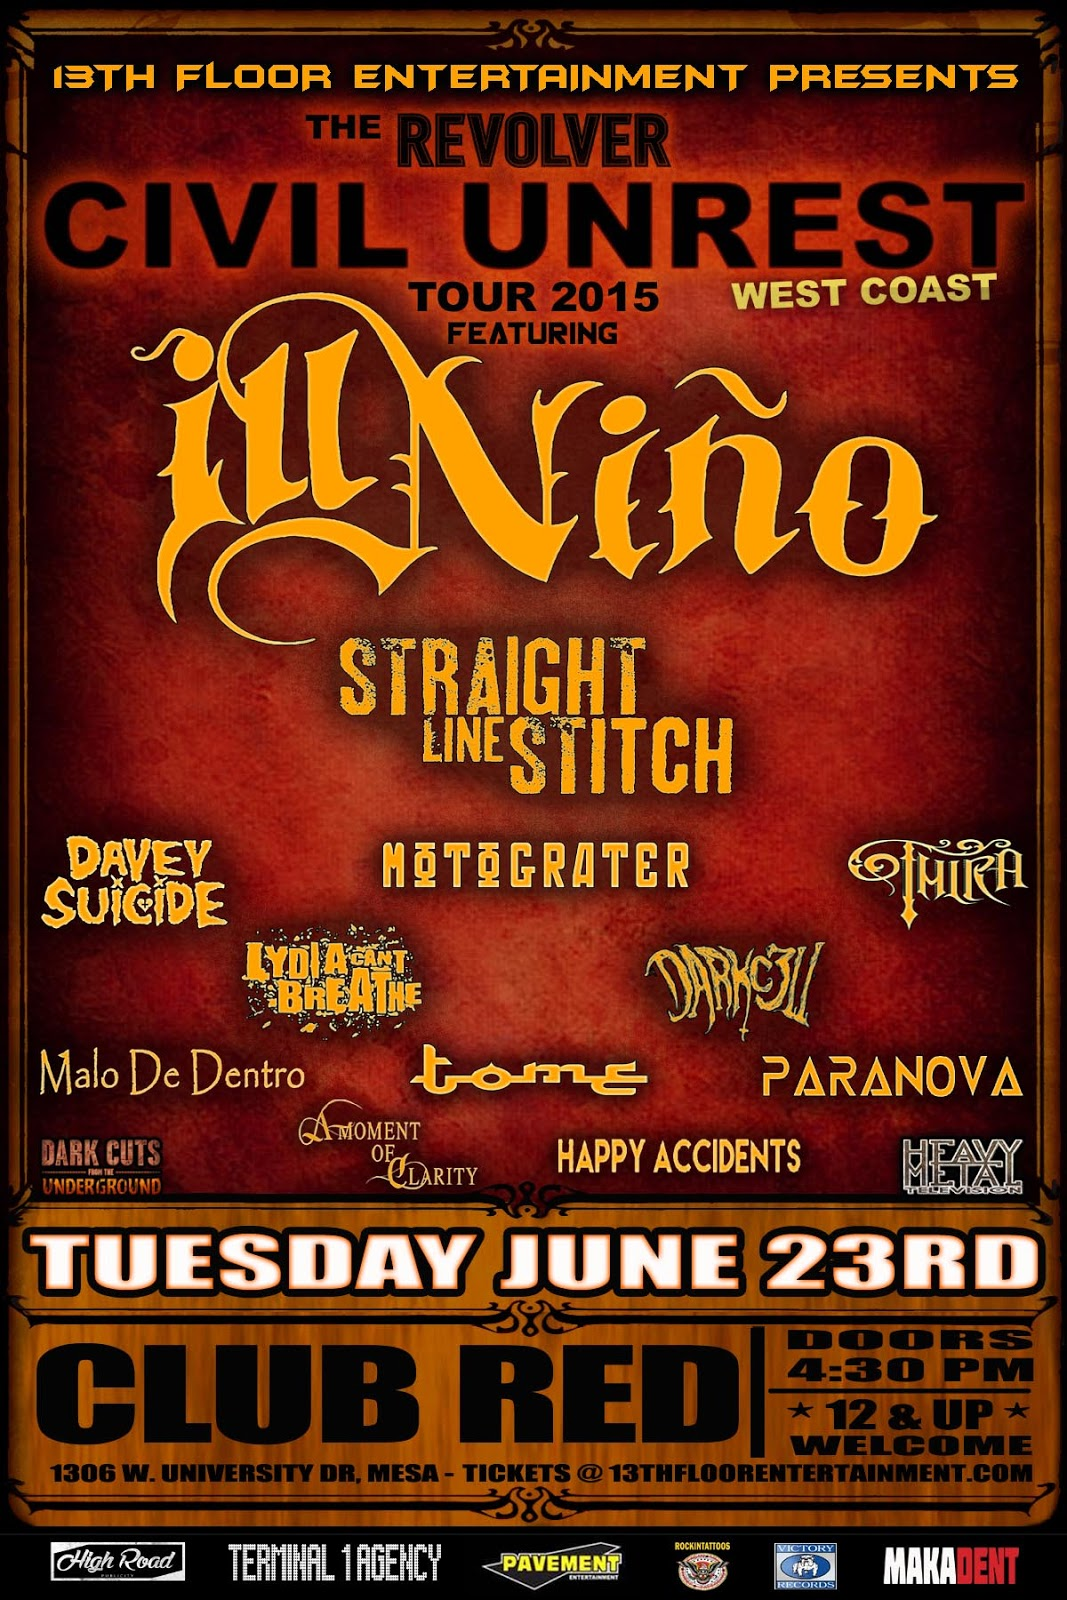 Ill Niño on June 23rd...More shows coming!